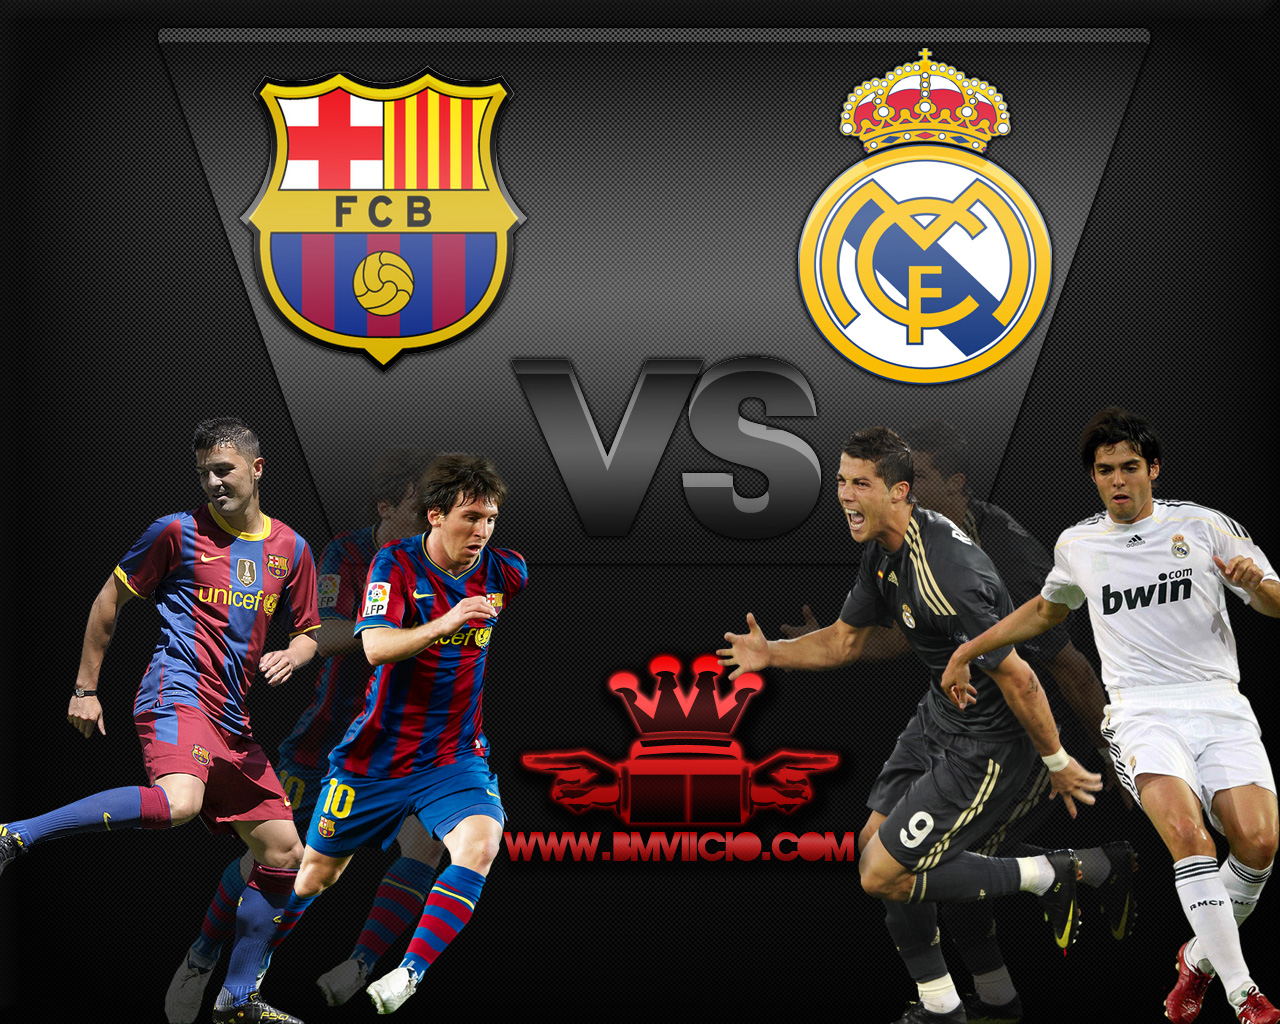 Wallpaper Barcelona Vs Real Madrid By Bmviicio